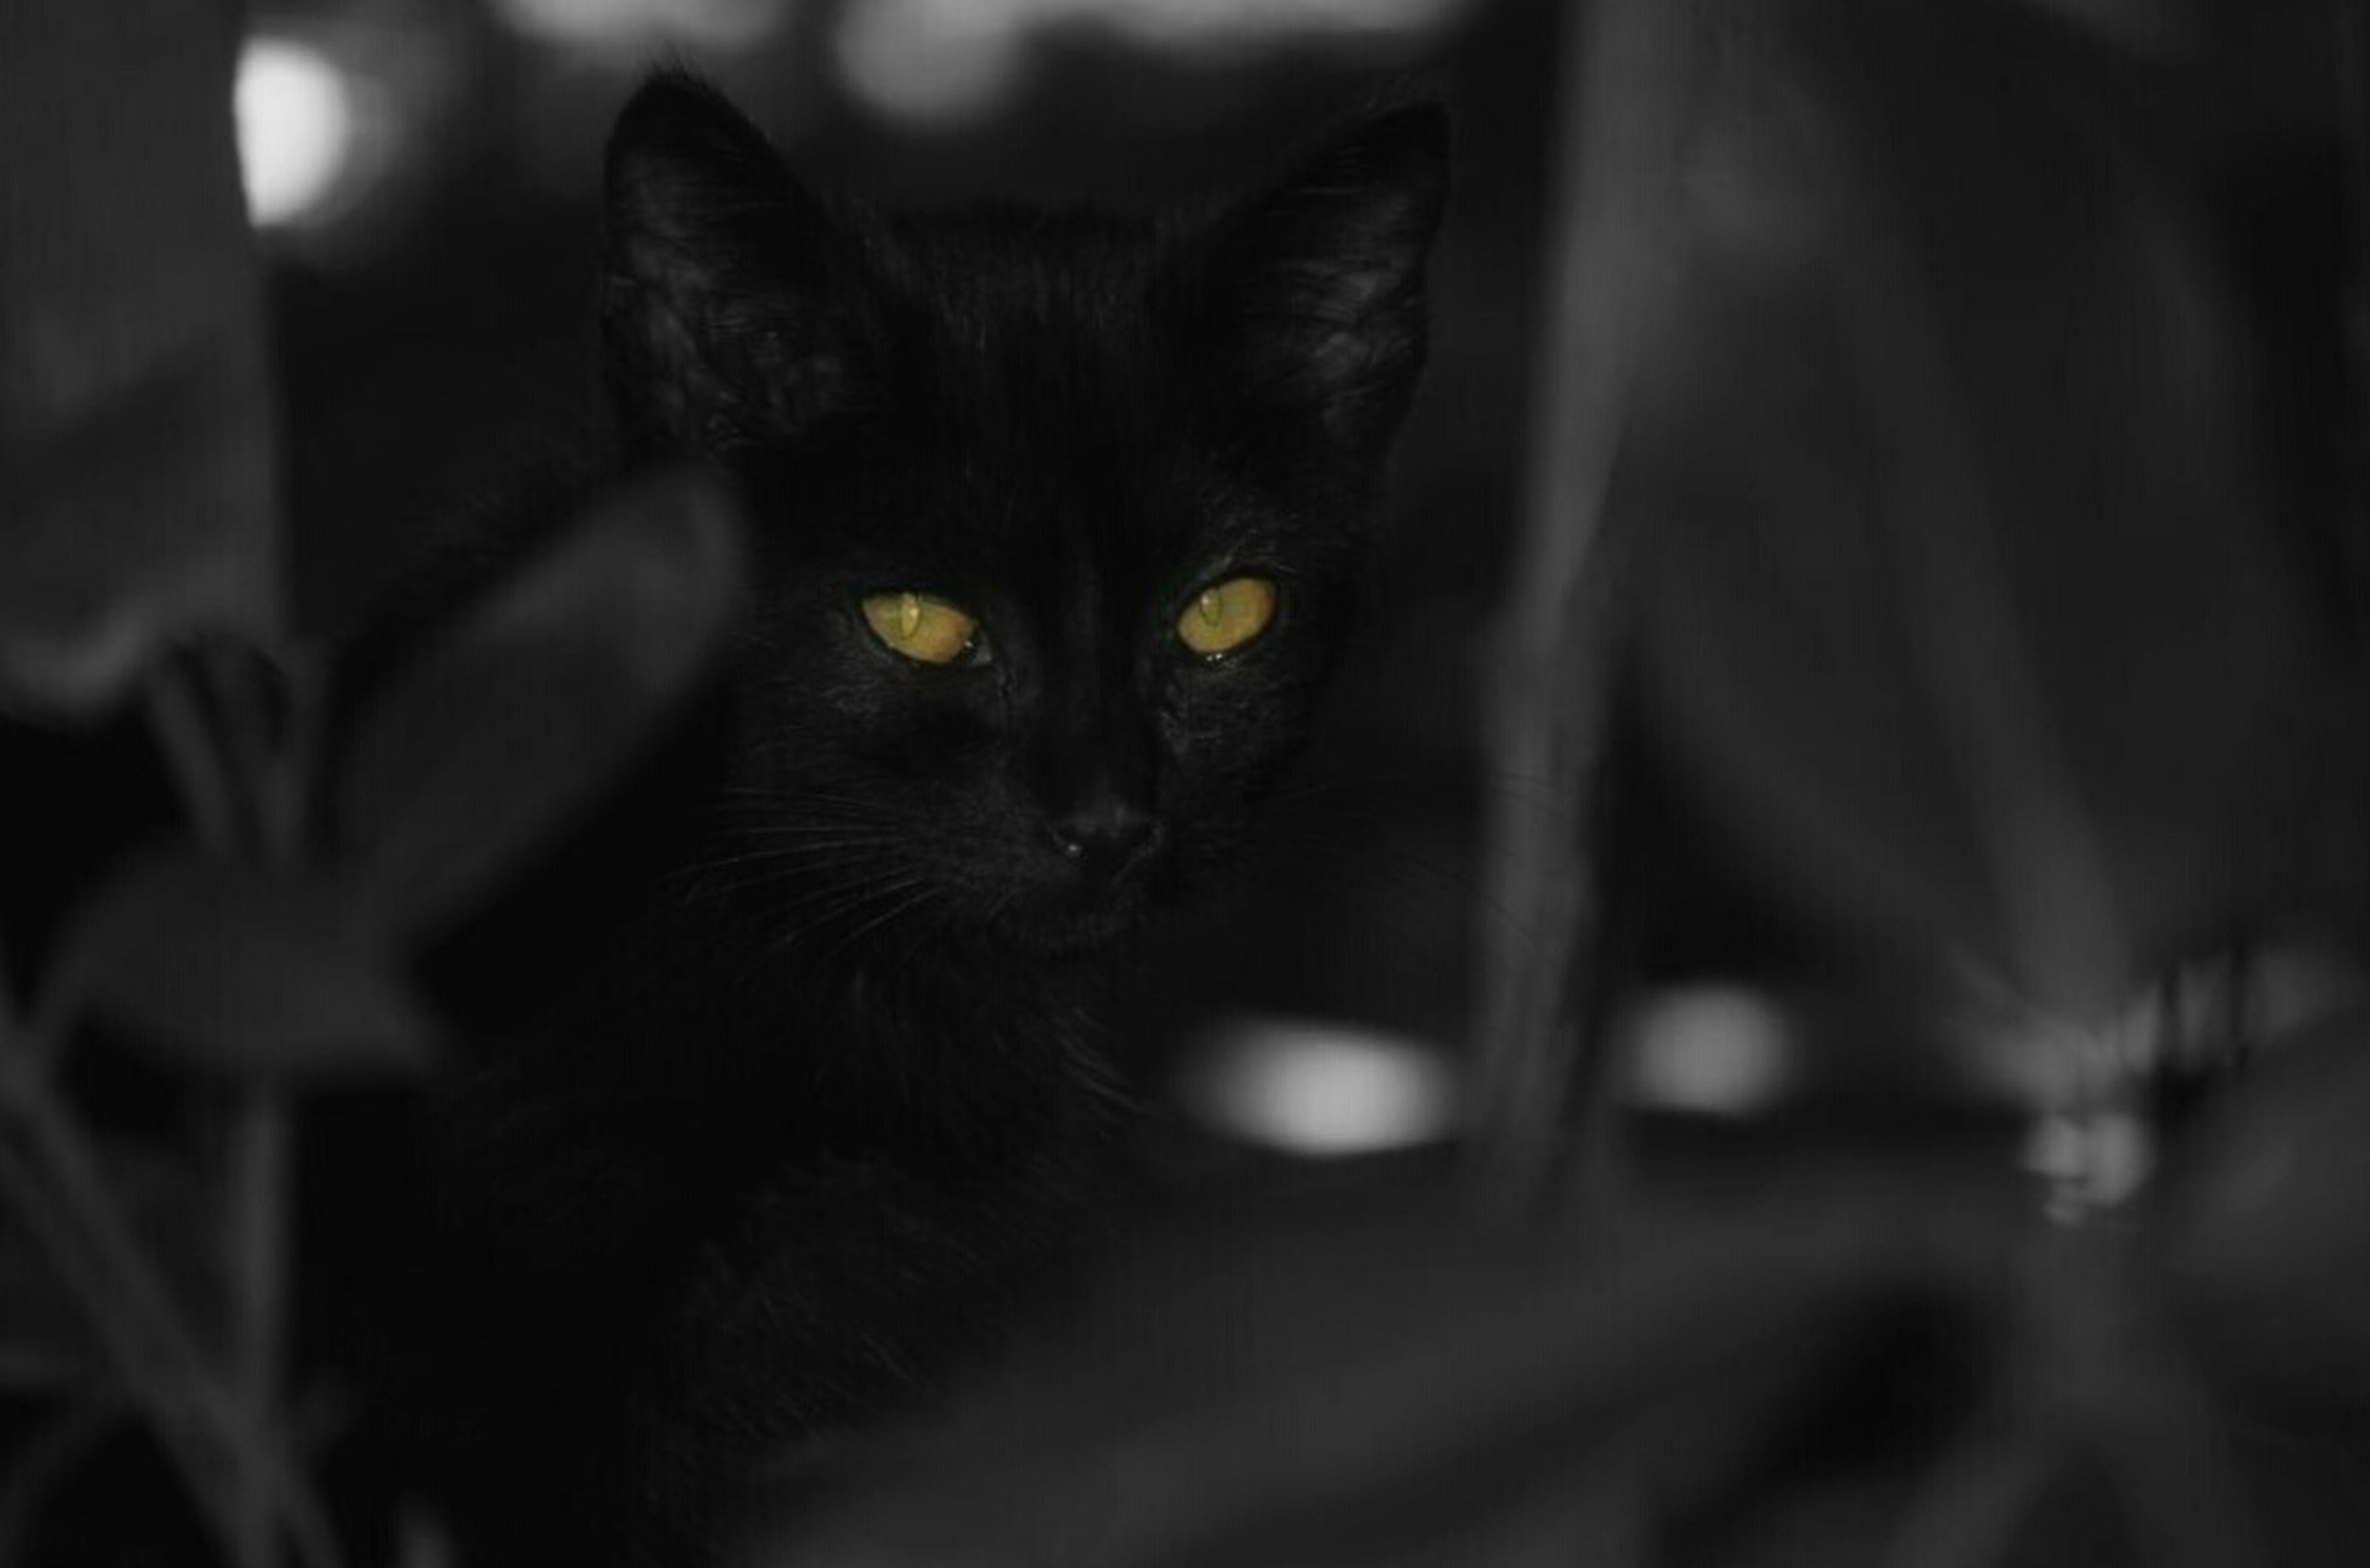 pets, domestic cat, domestic animals, one animal, animal themes, cat, mammal, feline, whisker, looking at camera, portrait, indoors, close-up, selective focus, black color, focus on foreground, staring, relaxation, alertness